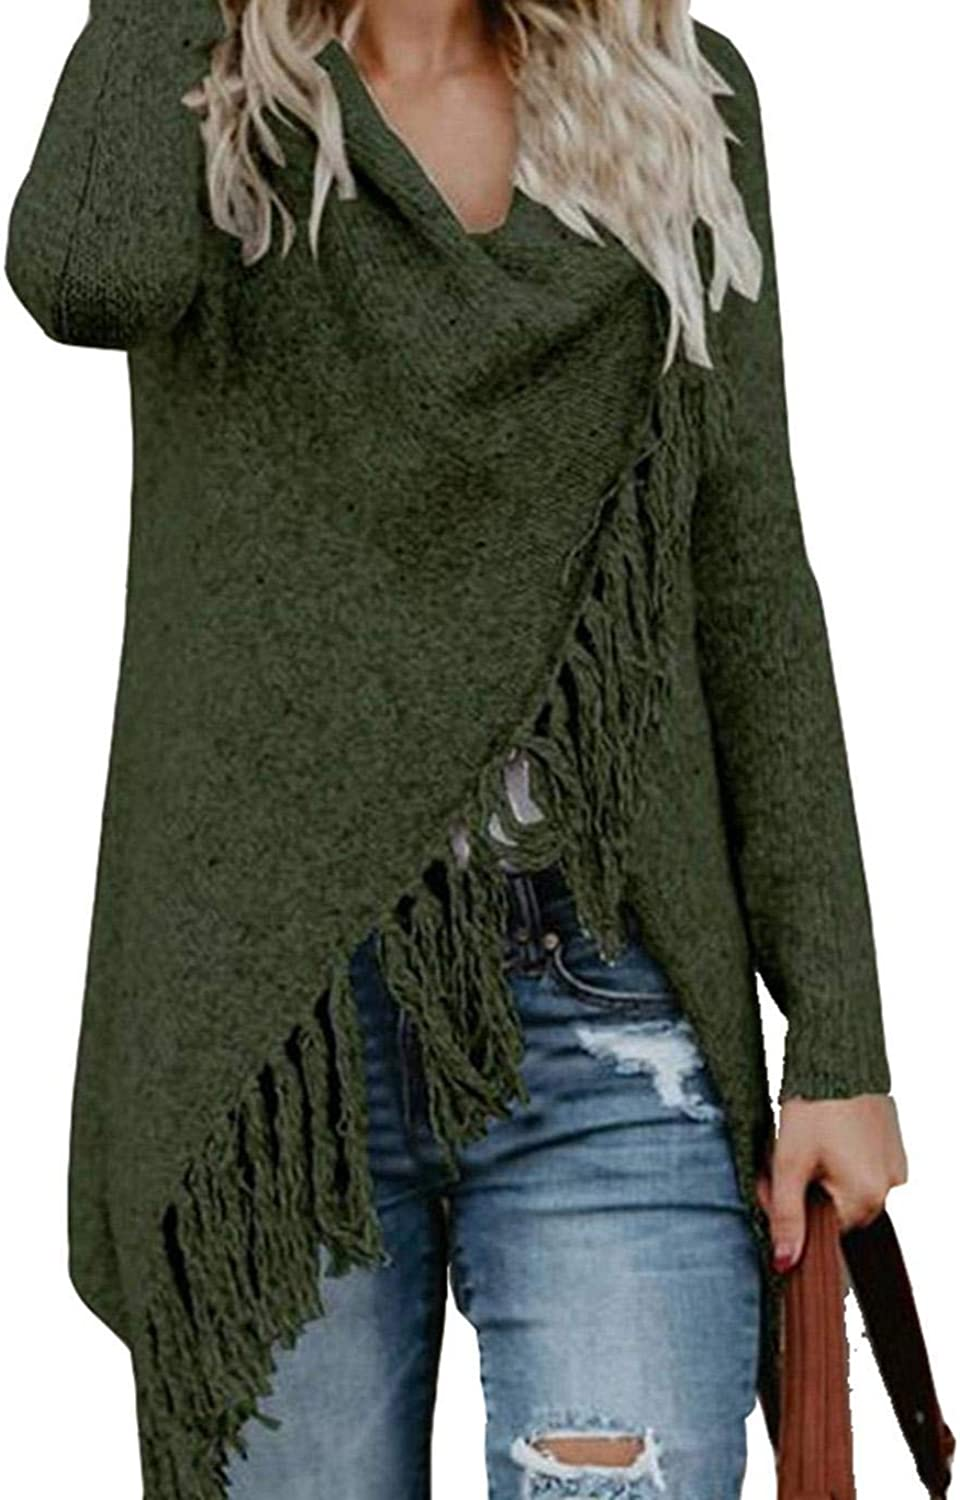 Troll Tree Women Fashion Casual Solid Asymmetric Knit Shawl Cape Sweater Cardigan Cardigans